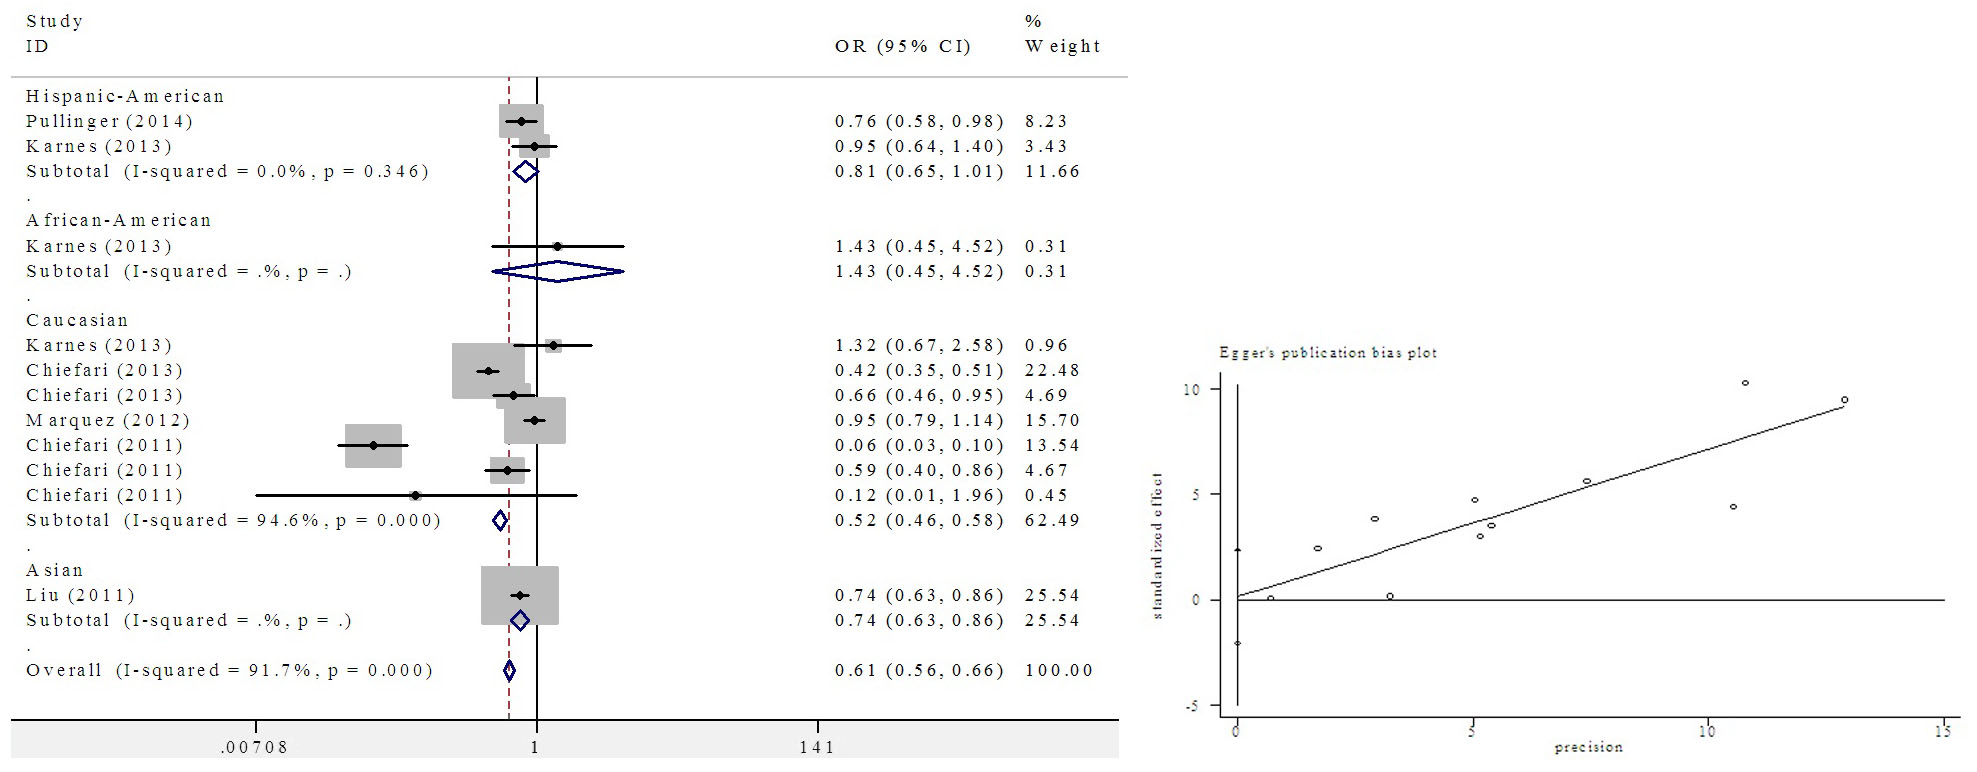 Figure 2:Meta-analysis of the HMGA1 variant IVS5-13insC and T2D